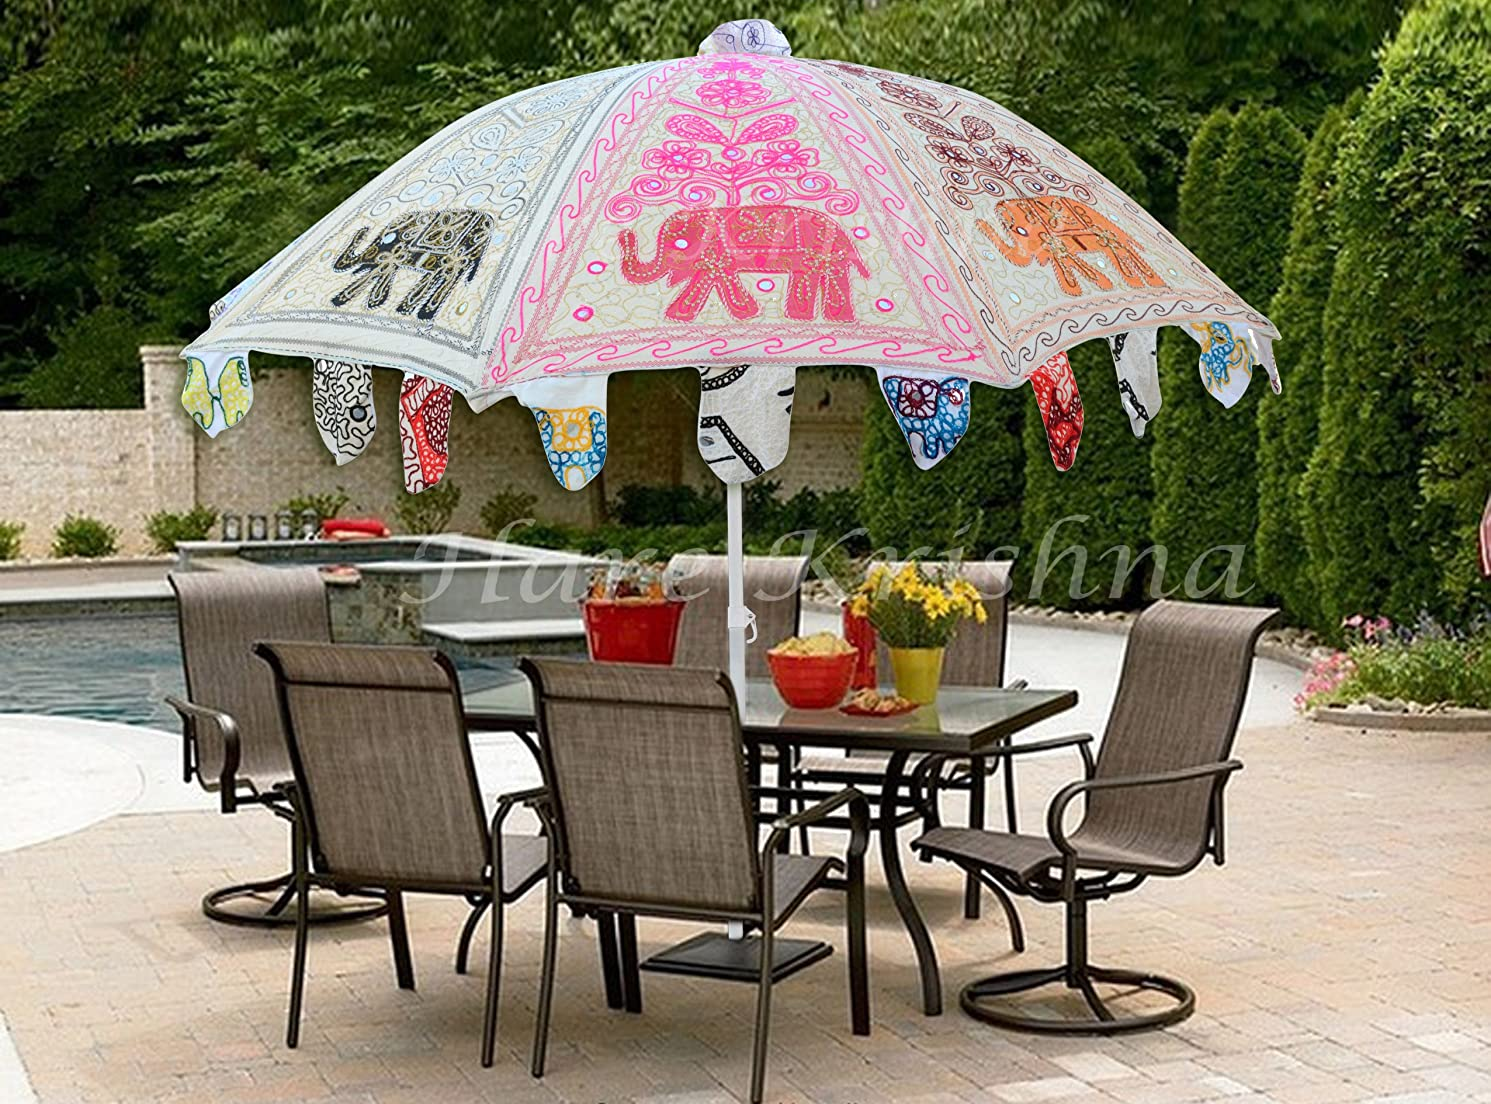 Hare Krishna Indian Vintage Outdoor Handmade Embroidery Design Cotton Garden Umbrella Gifts Parasol (White) 70 x 90 Inches